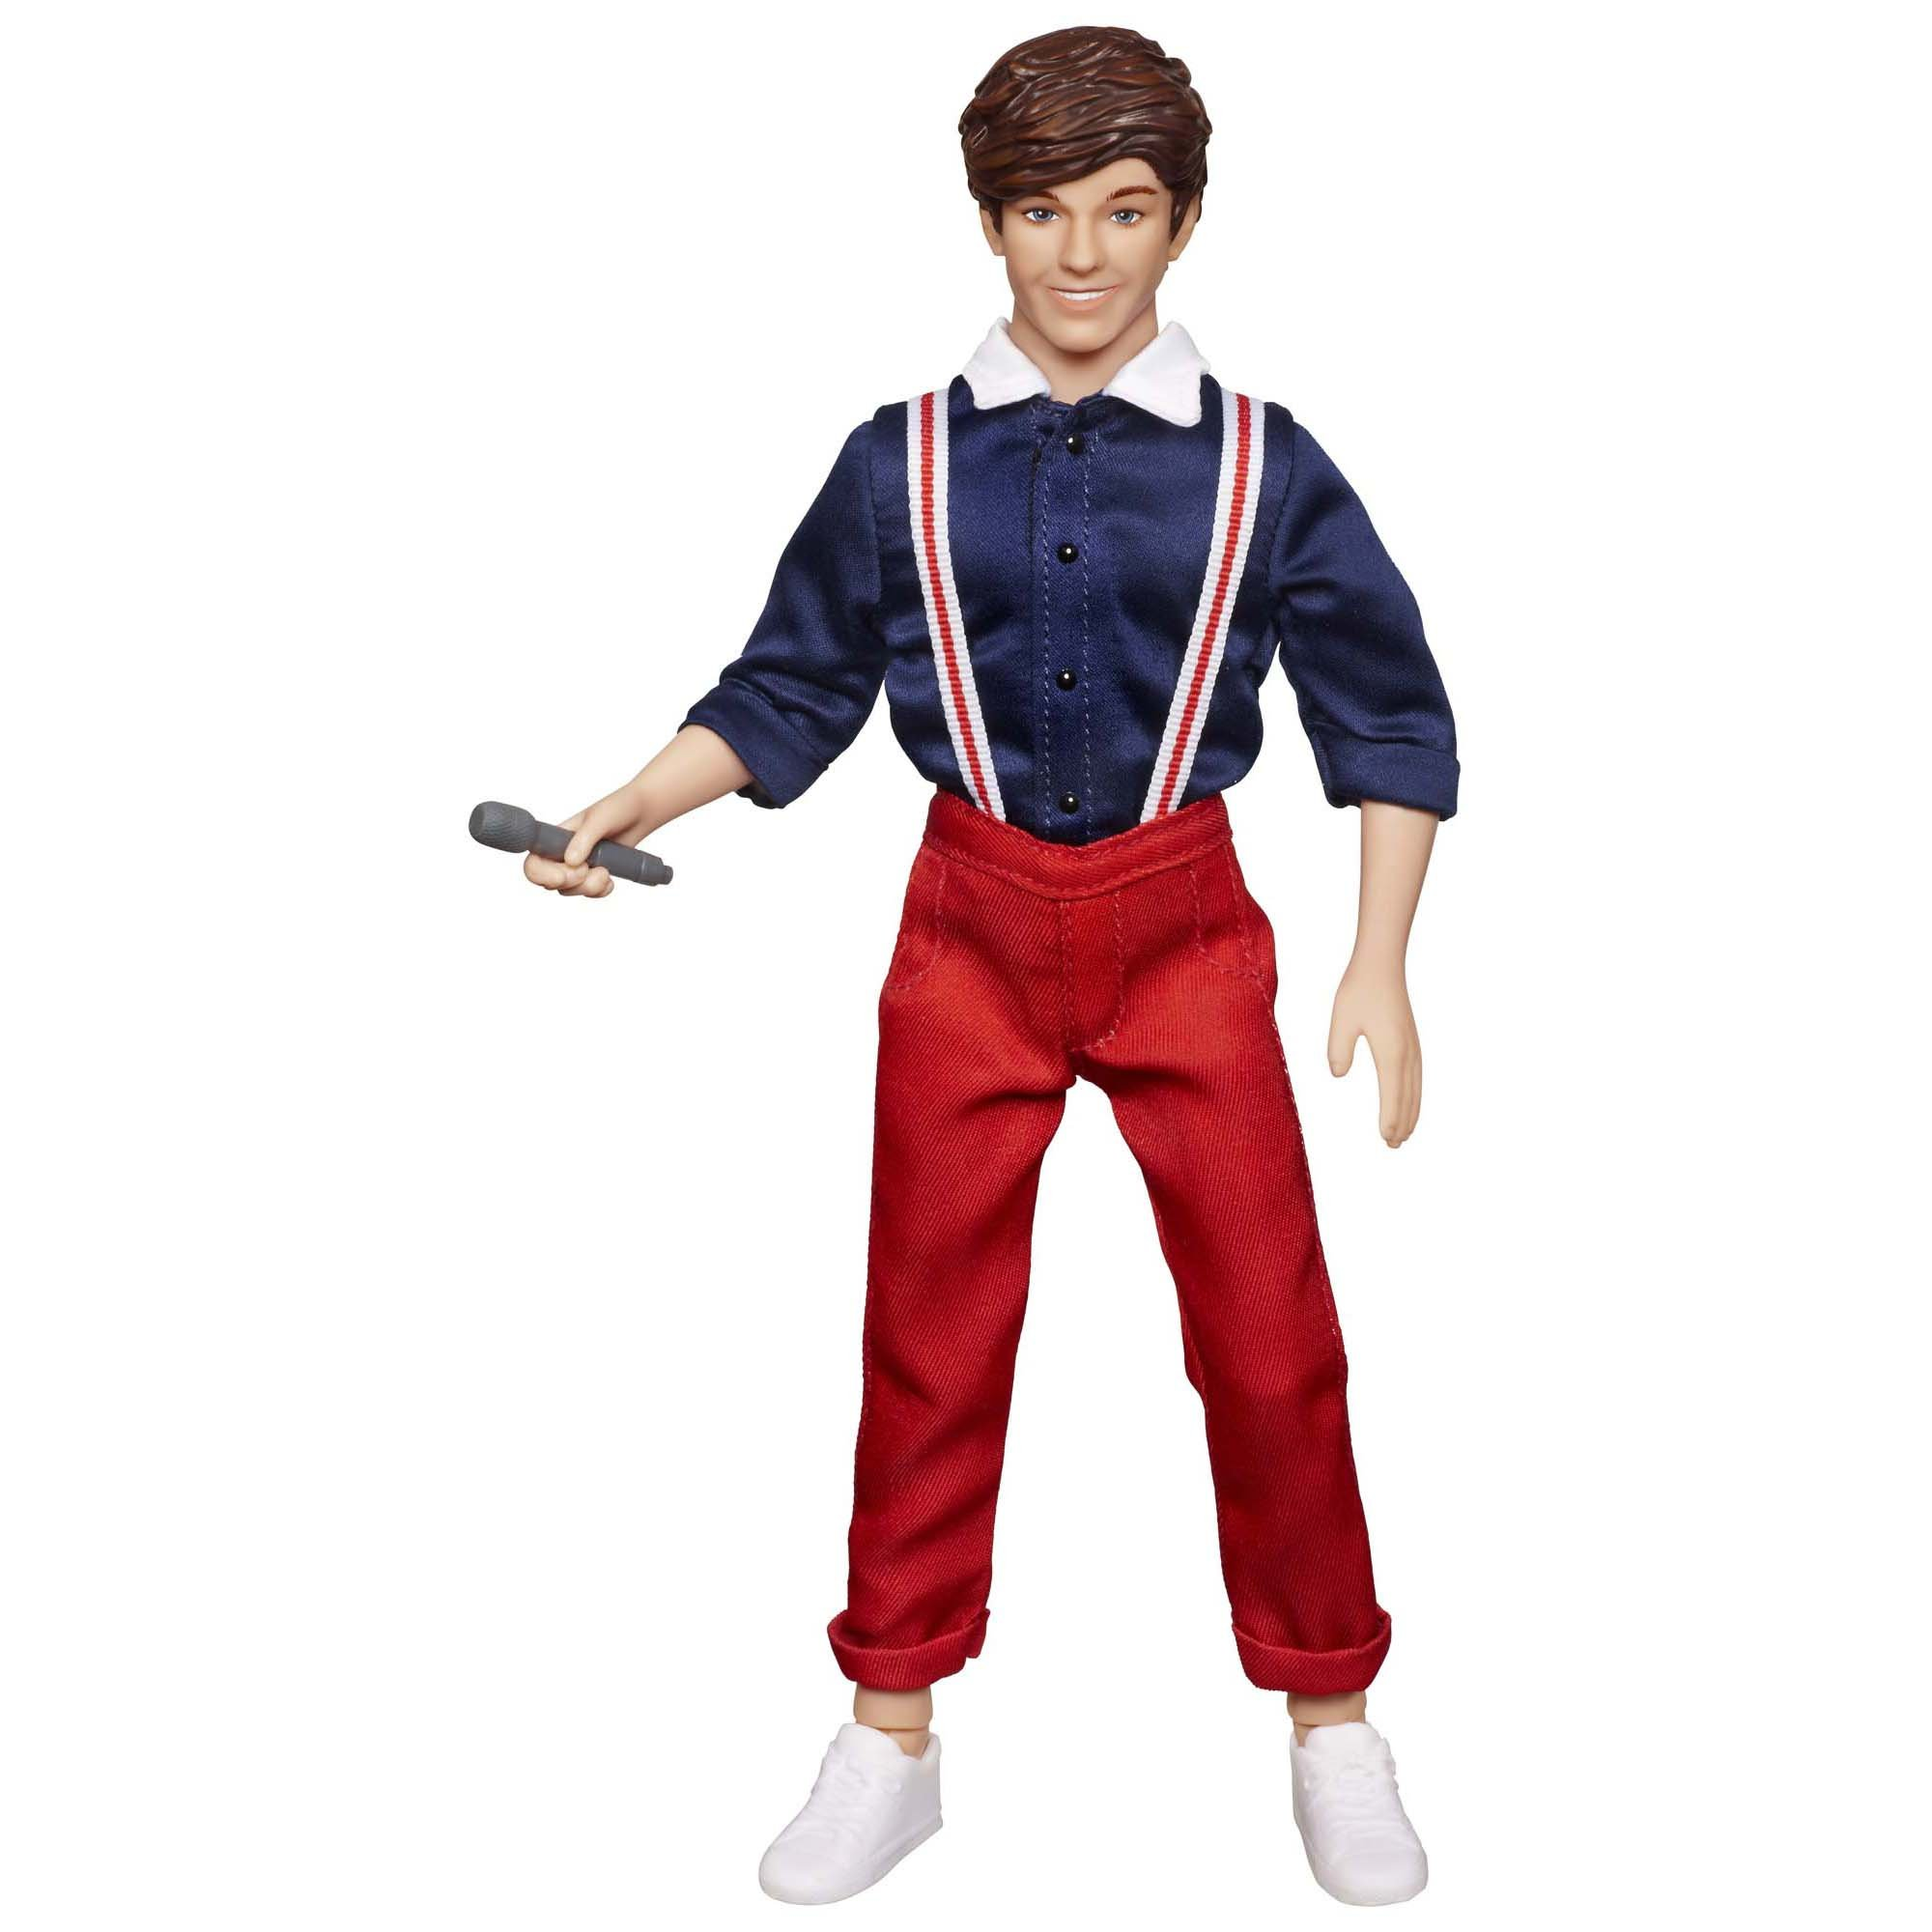 """One Direction 1D Singing Series Collection Singing Louis Toy Doll with Outfit, Shoes, & Microphone Sings 30 Second Song Clip """"One Thing"""", 12 Inches, Multicolor, 1 Doll"""